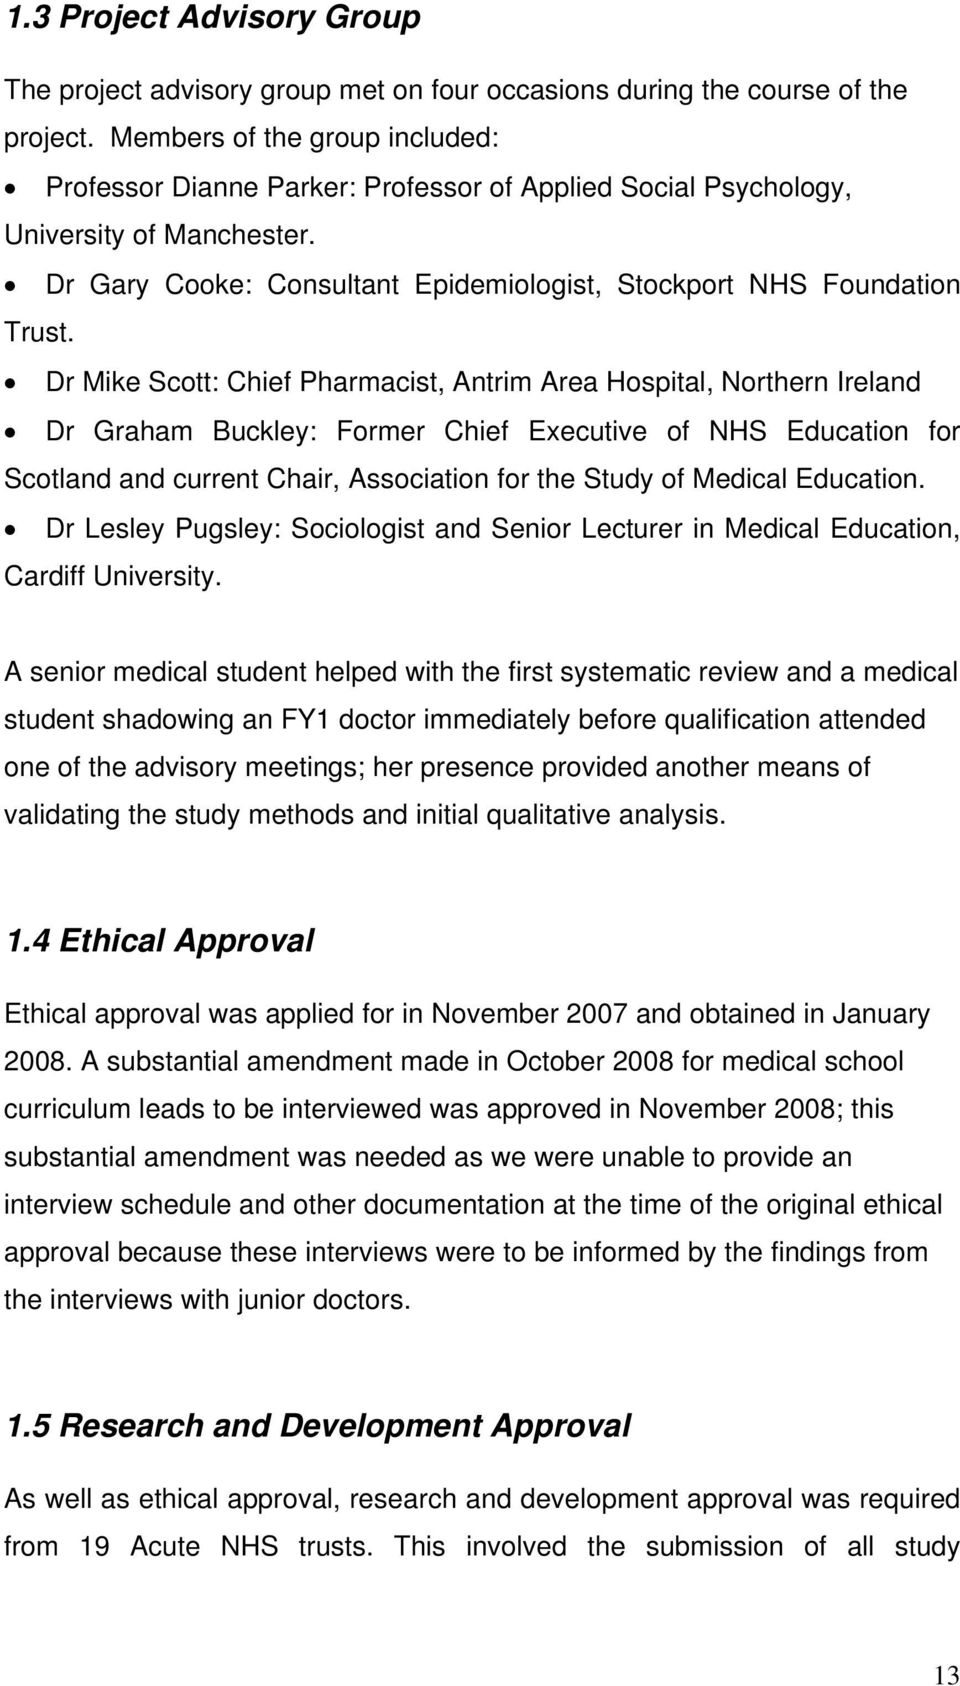 Dr Mike Scott: Chief Pharmacist, Antrim Area Hospital, Northern Ireland Dr Graham Buckley: Former Chief Executive of NHS Education for Scotland and current Chair, Association for the Study of Medical